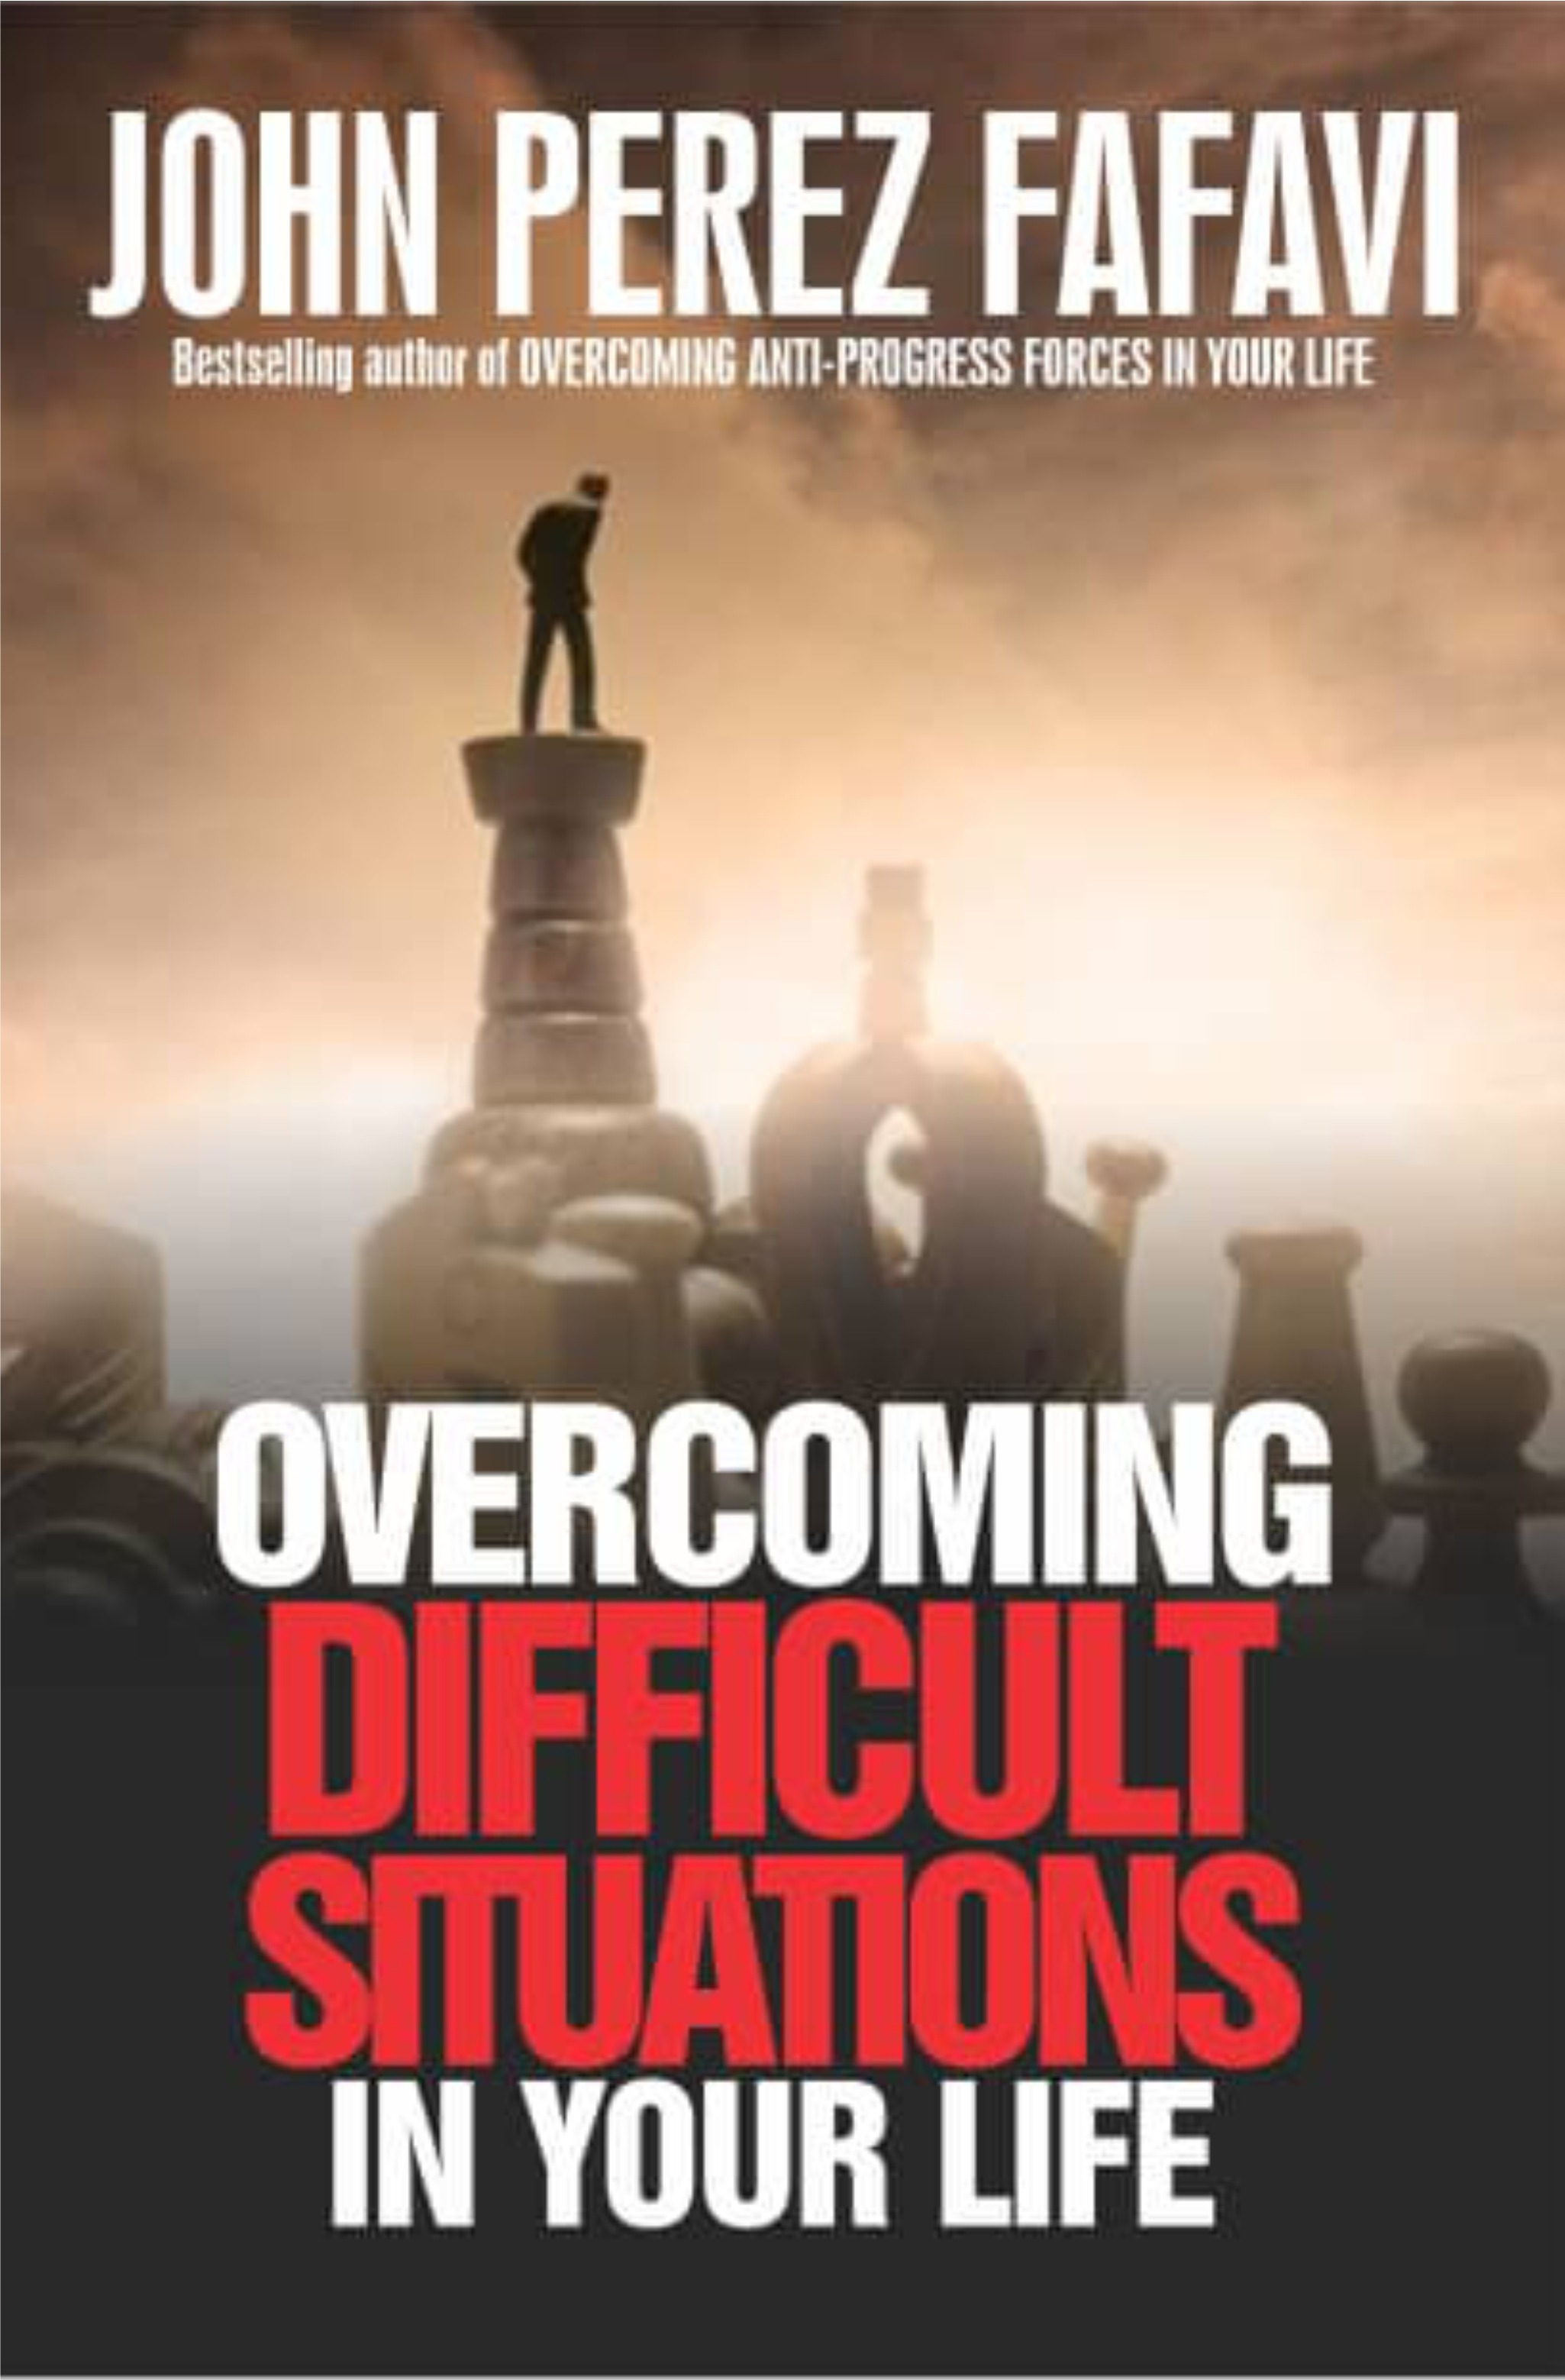 OVERCOMING DIFFICULT SITUATIONS IN YOUR LIFE